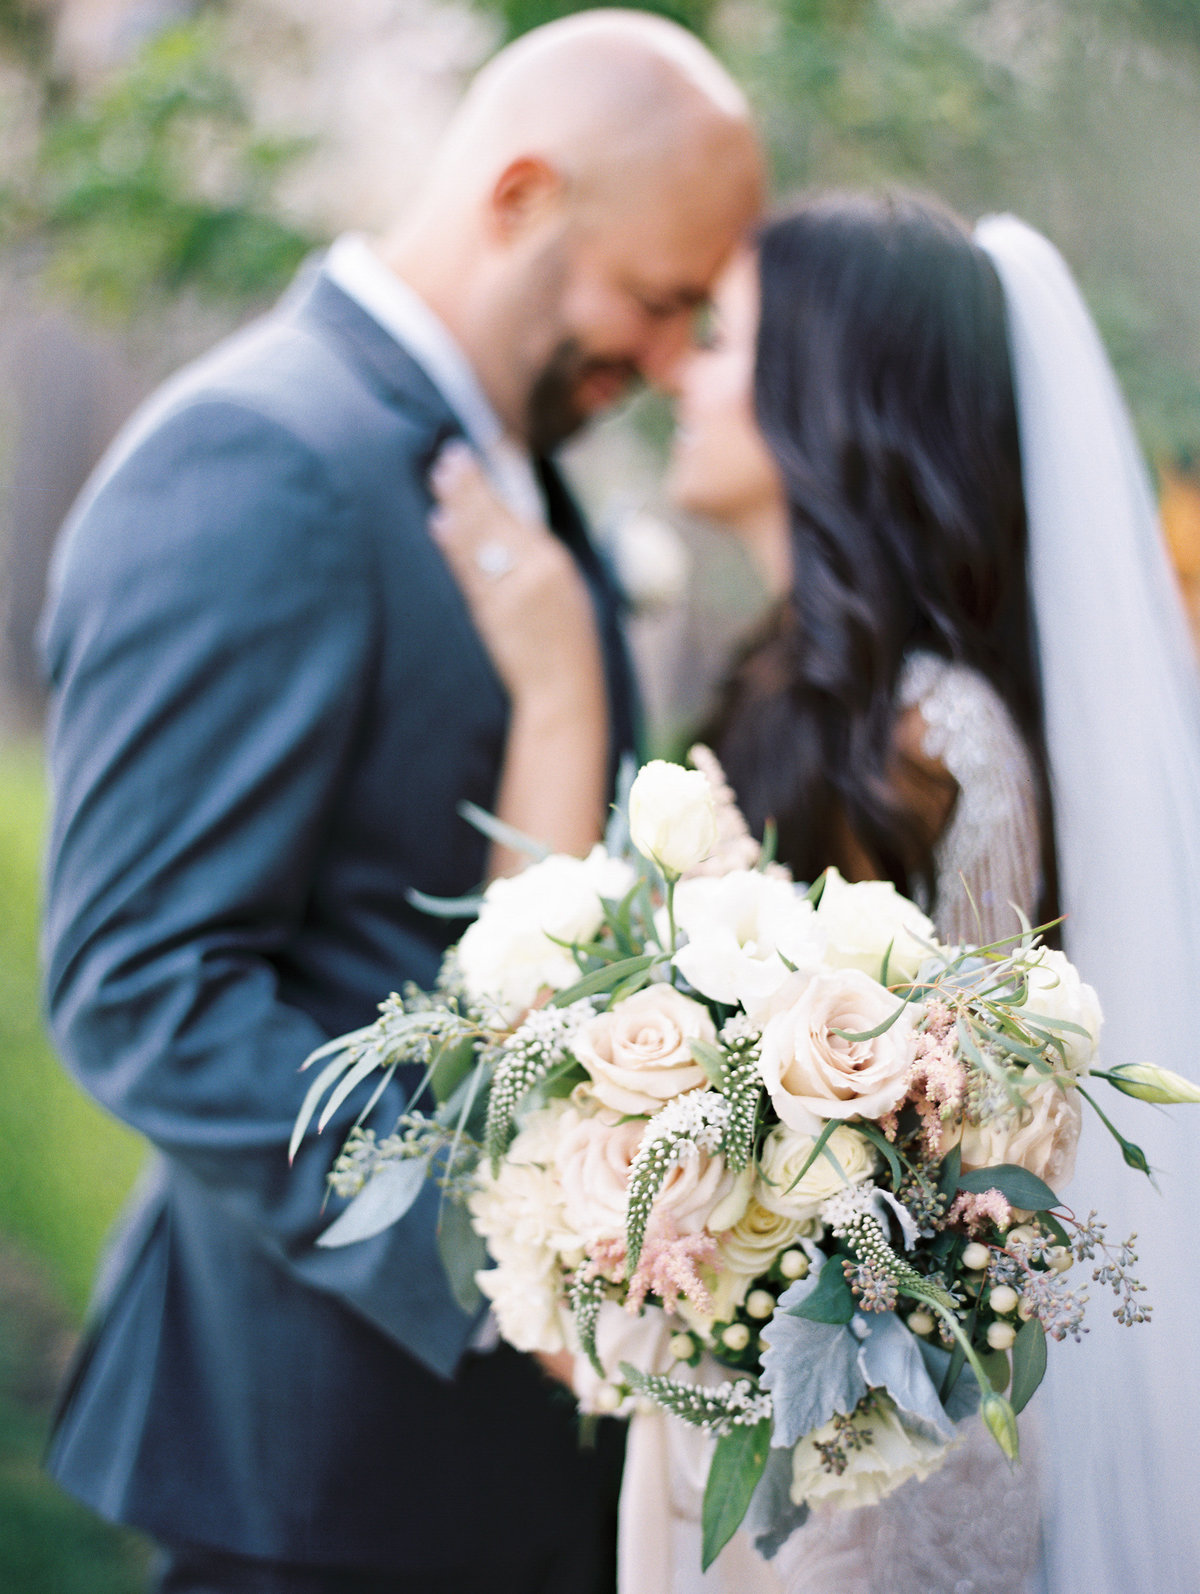 Natalie Bray Studios, Natalie Bray Photography, Southern California Wedding Photographer, Fine Art wedding, Destination Wedding Photographer, Sonoma Wedding Photographer-43